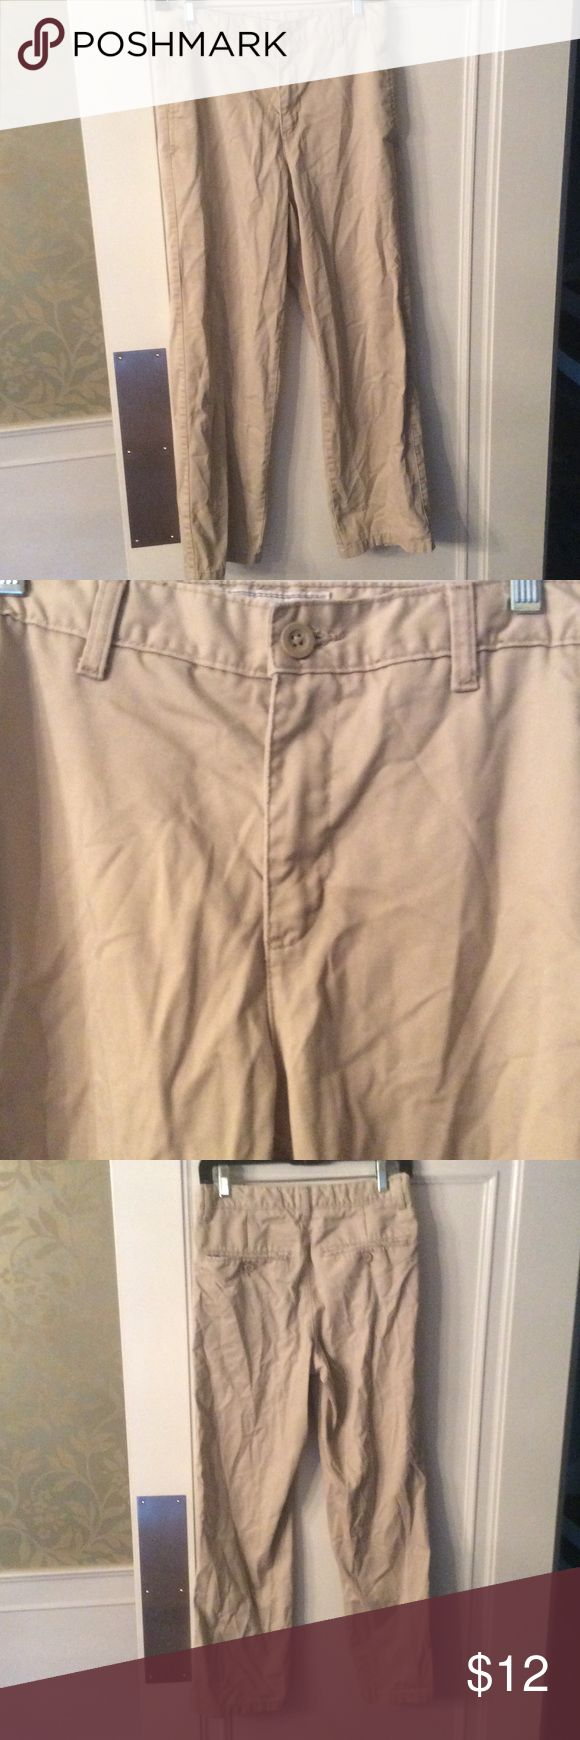 Old Navy boy's plain front khaki pants Old Navy boy's plain front khaki pants with adjustable waist. In great condition just need a good ironing. My son wore them for school uniform pants and quickly outgrew them. Old Navy Bottoms Casual